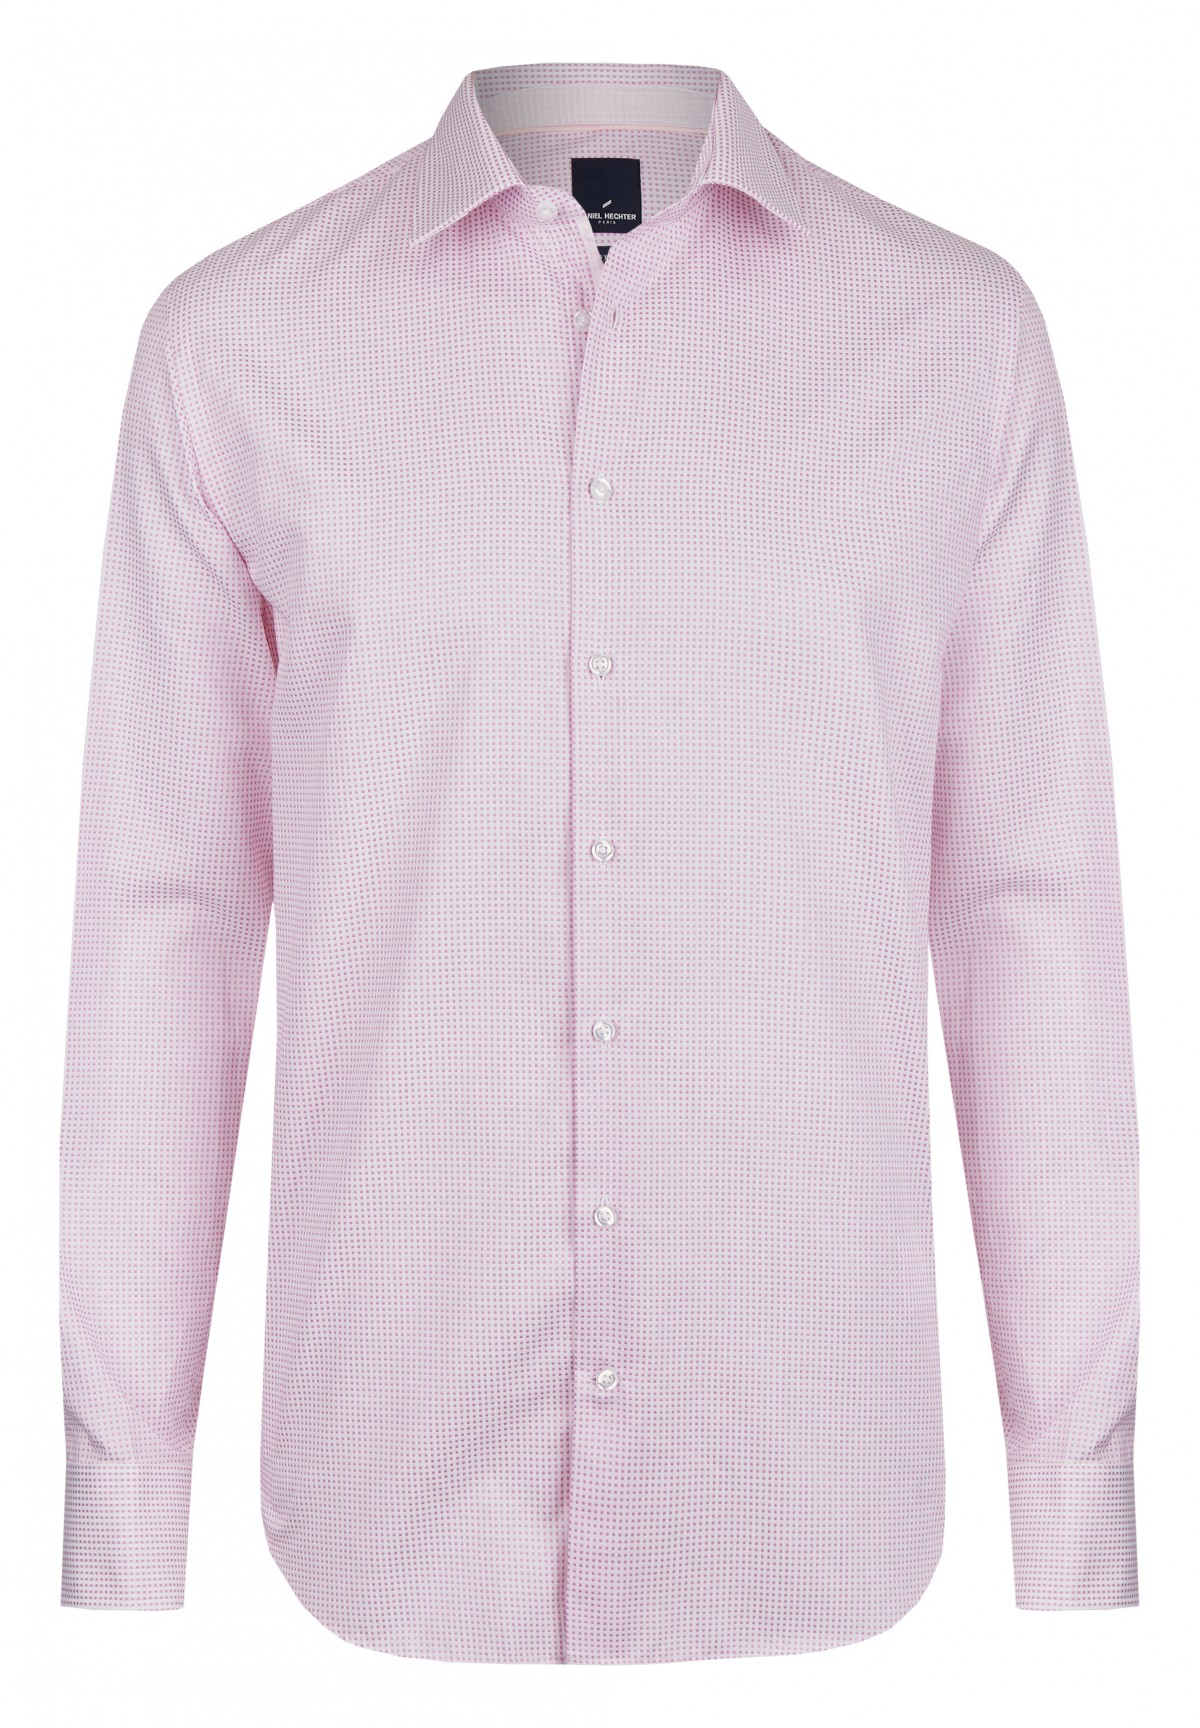 Modernes Business Hemd / SHIRT MODERN FIT